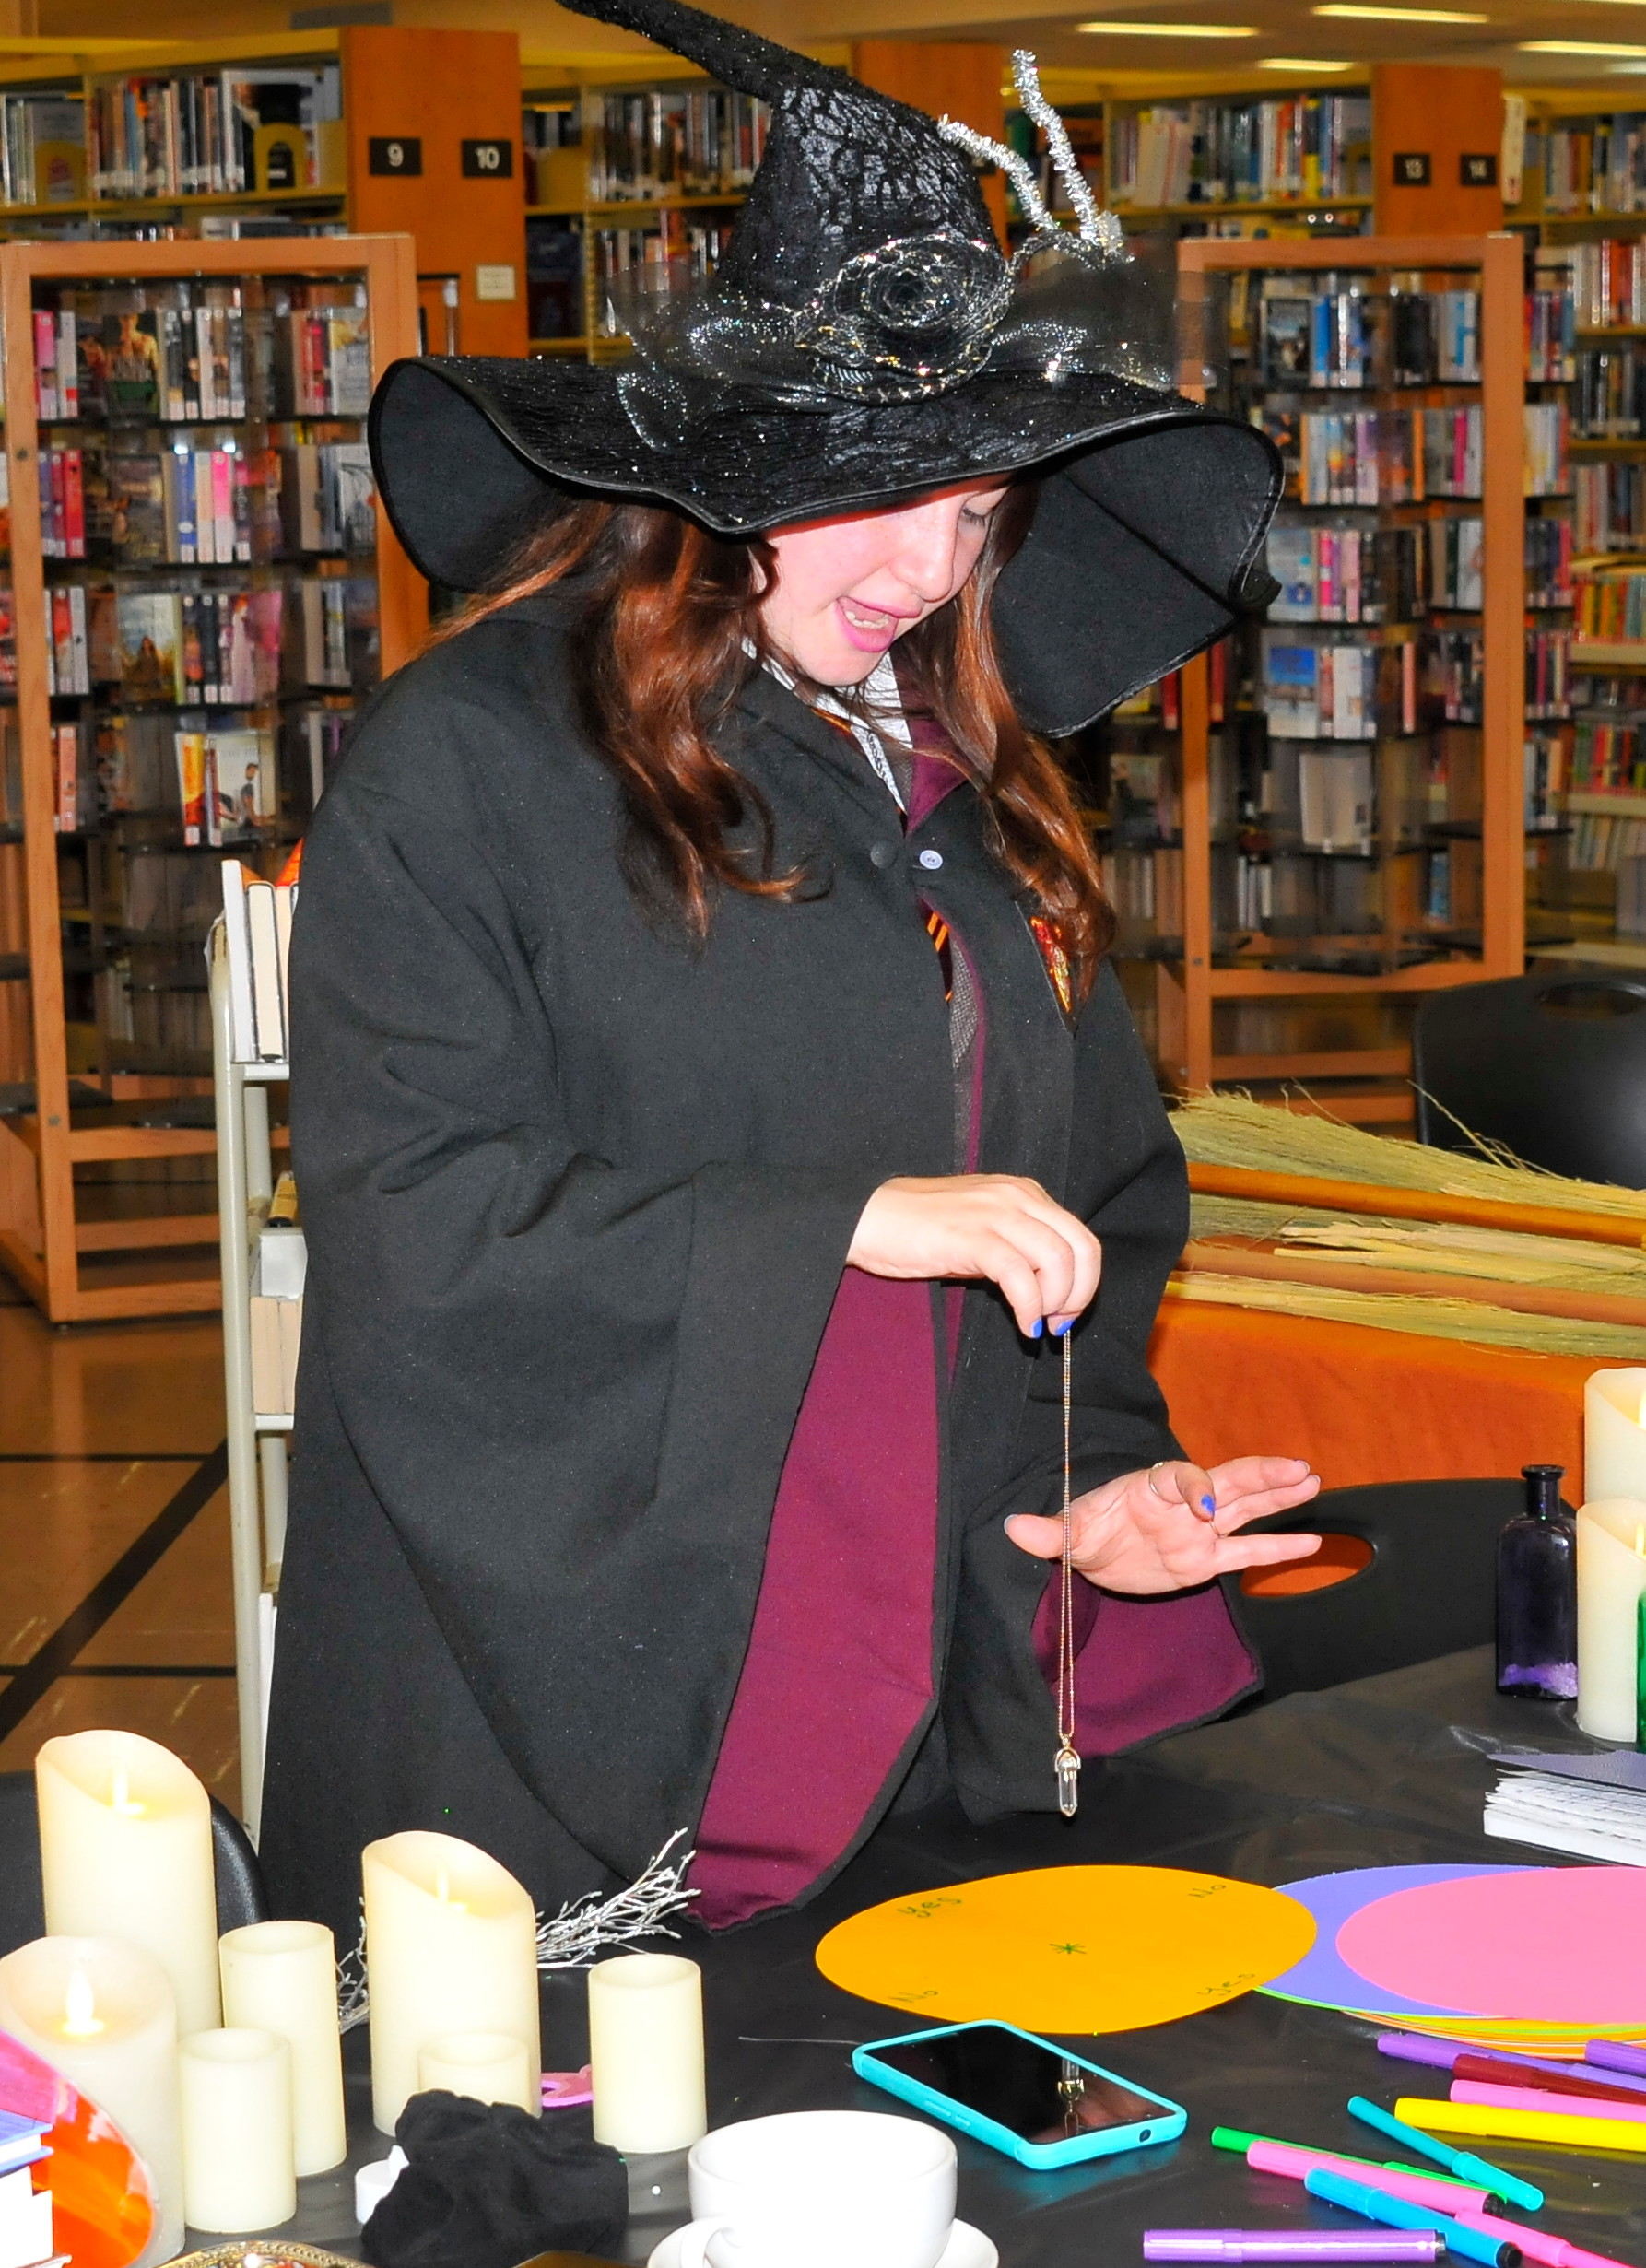 Librarians dressed in wizard robes demonstrated potion, want and broom making for children at Harry Potter's birthday celebration